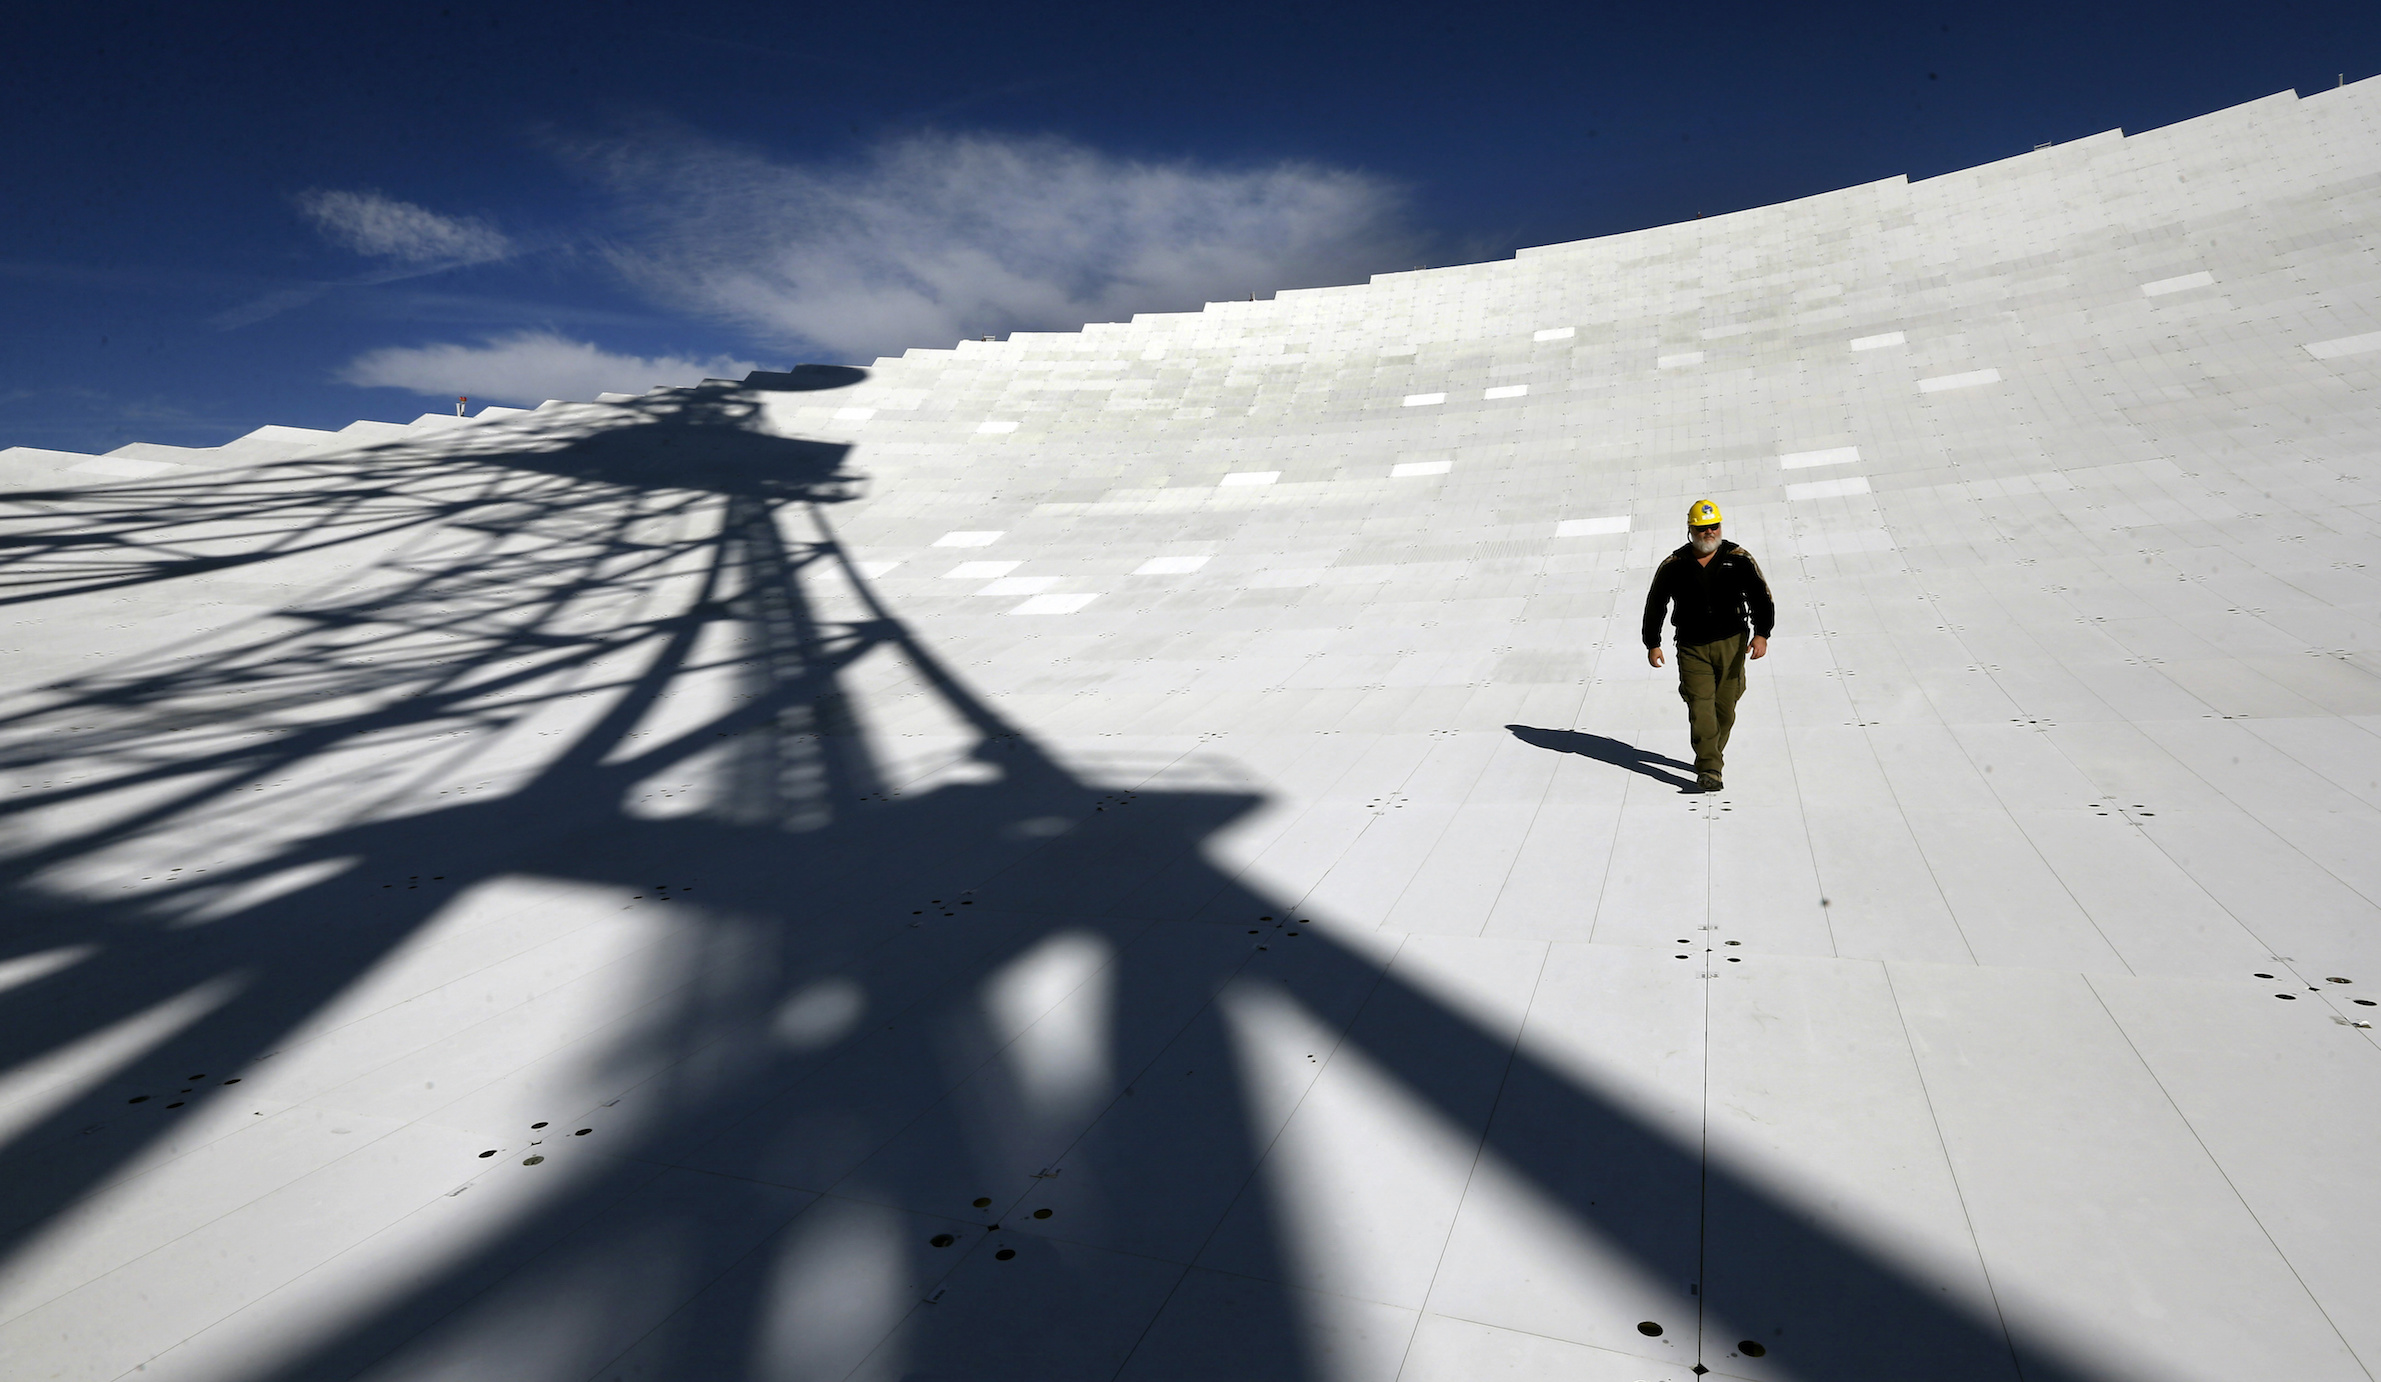 In this Nov. 14, 2013 photo, Michael Holstine, business manager at the National Radio Astronomy Observatory, walks on the 2.3 acre surface of the Robert C. Byrd Green Bank Telescope's dish in Green Bank, W.Va. Scientists use the telescope to conduct a wide range of research, picking up faint signals that aid in the study of the origins and structure of the universe. (AP Photo/Patrick Semansky)